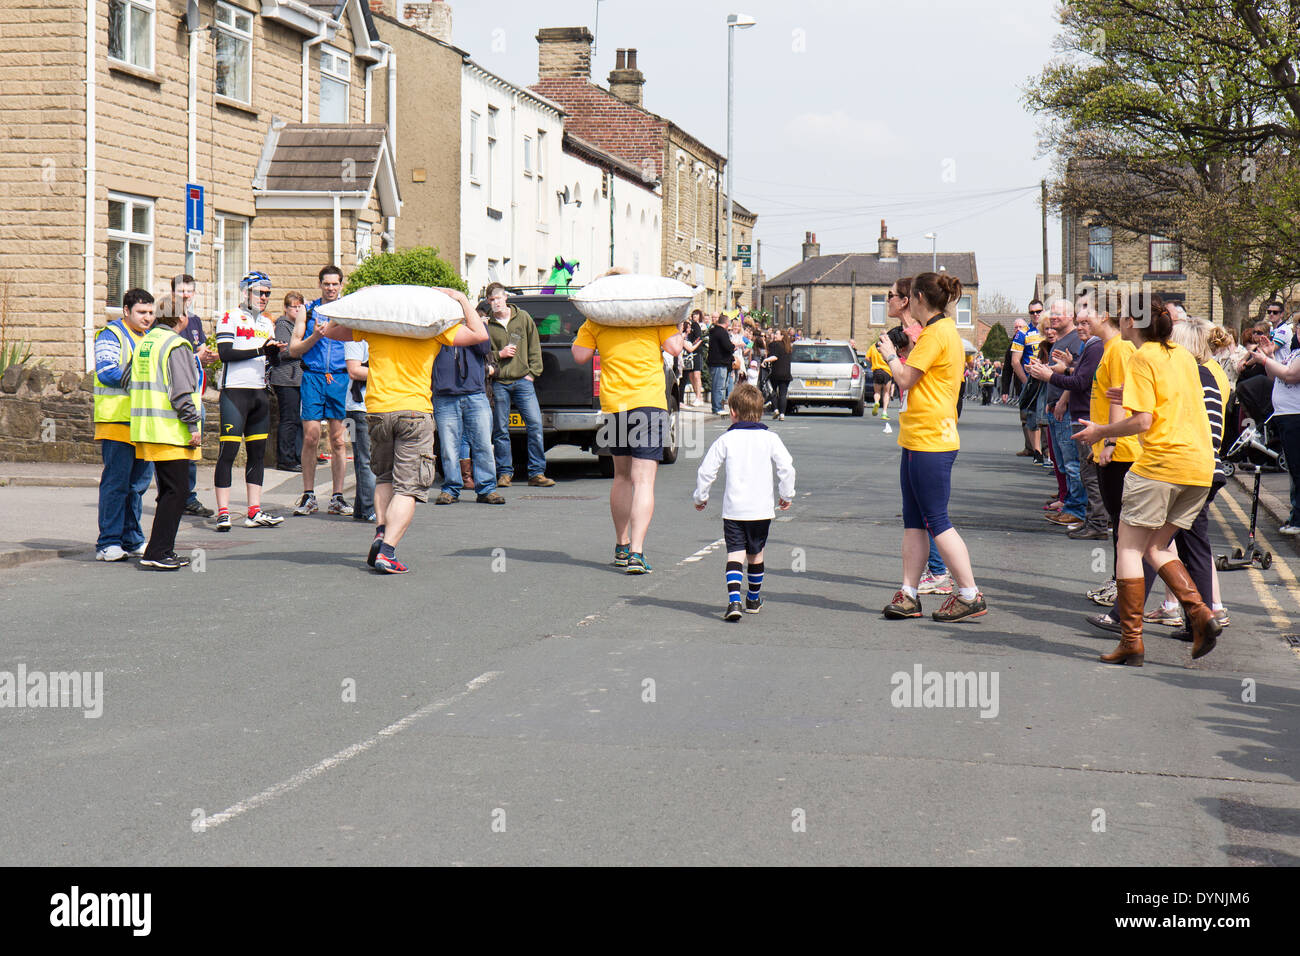 World Coal Carrying Championship, Gawthorpe, West Yorkshire, Easter Monday 2014.  male contestants running the race - Stock Image